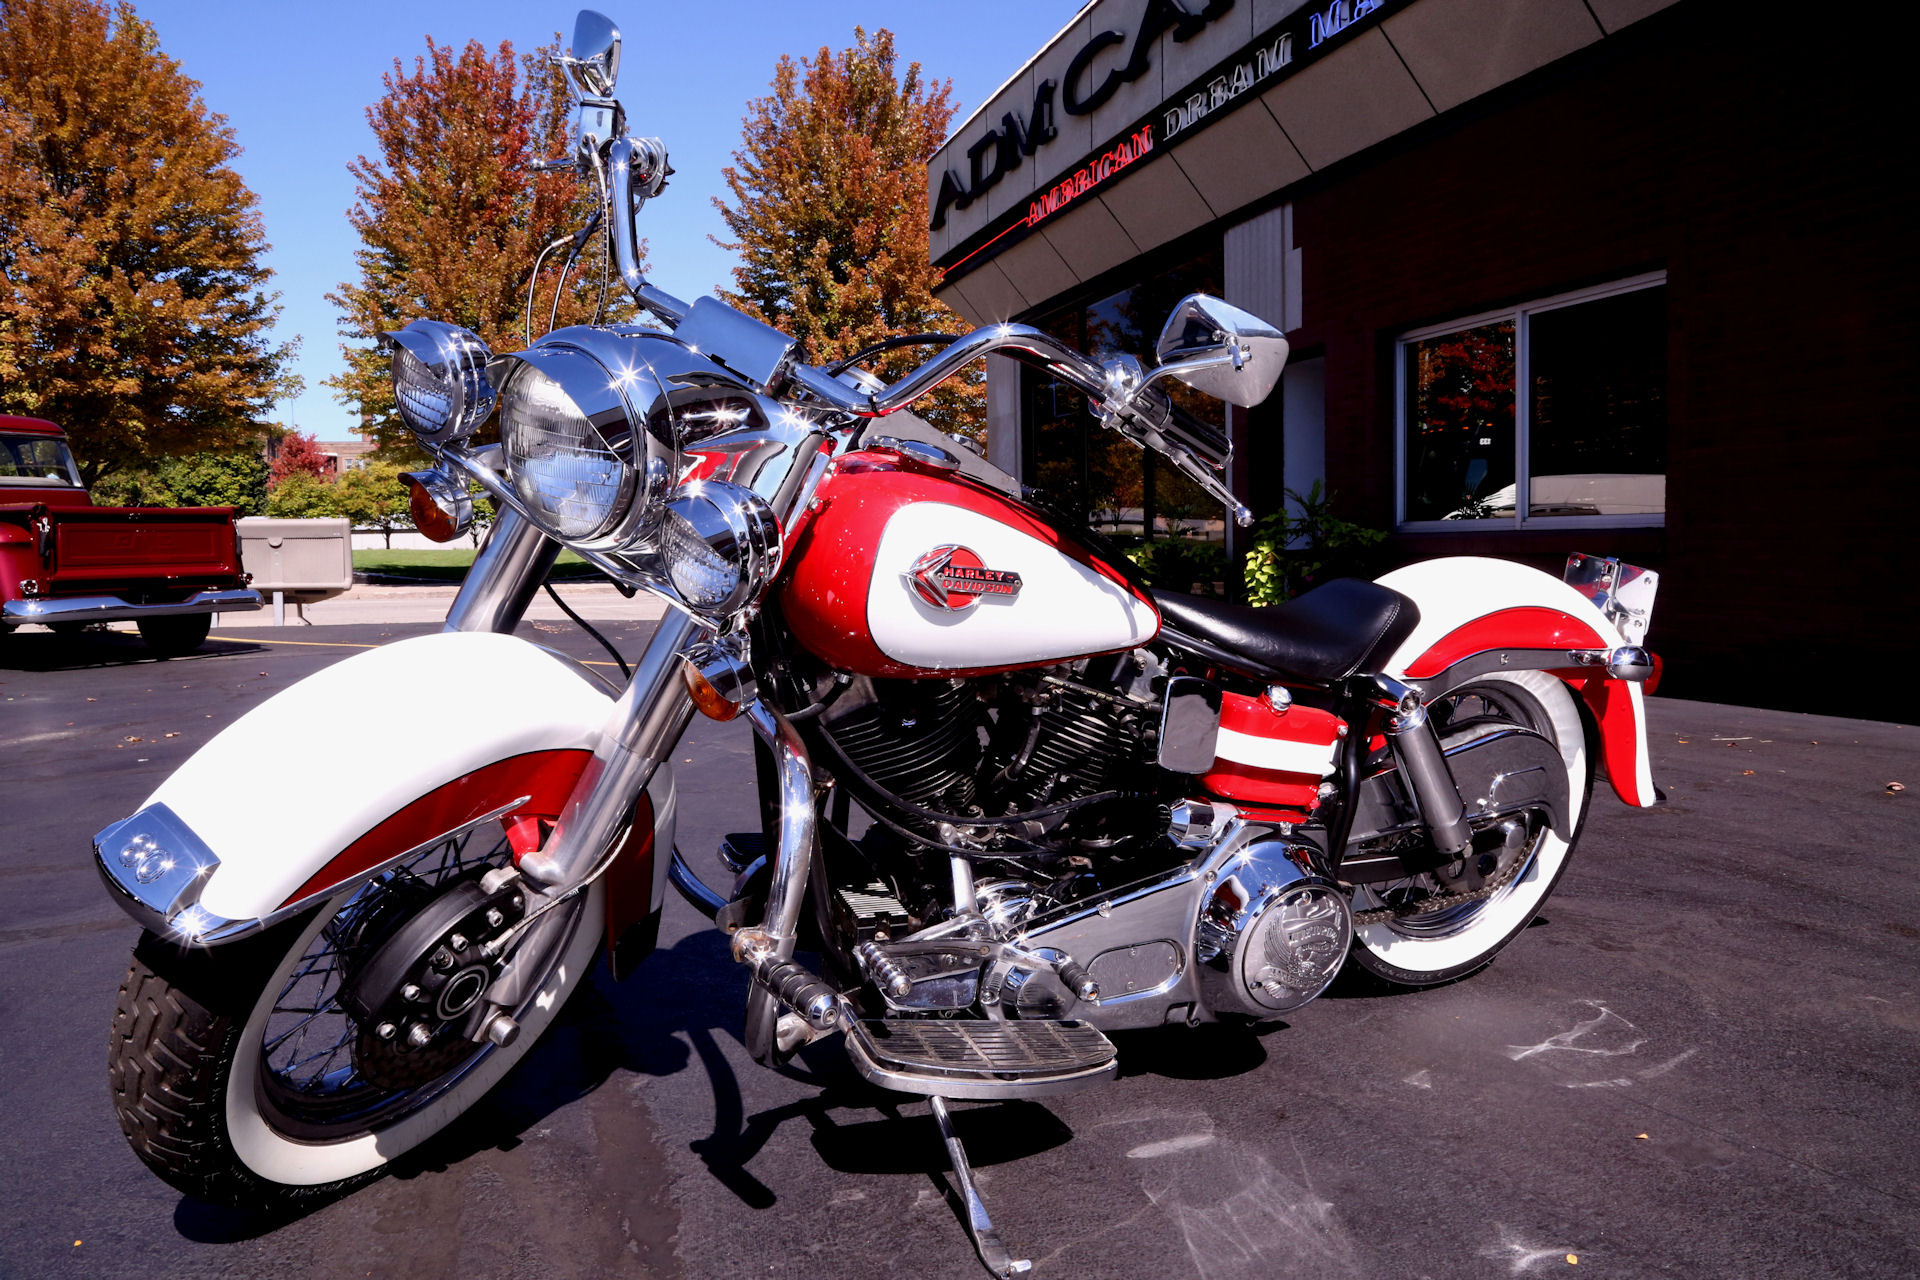 1979 harley davidson shovelhead red white american dream machines classic cars muscle cars. Black Bedroom Furniture Sets. Home Design Ideas